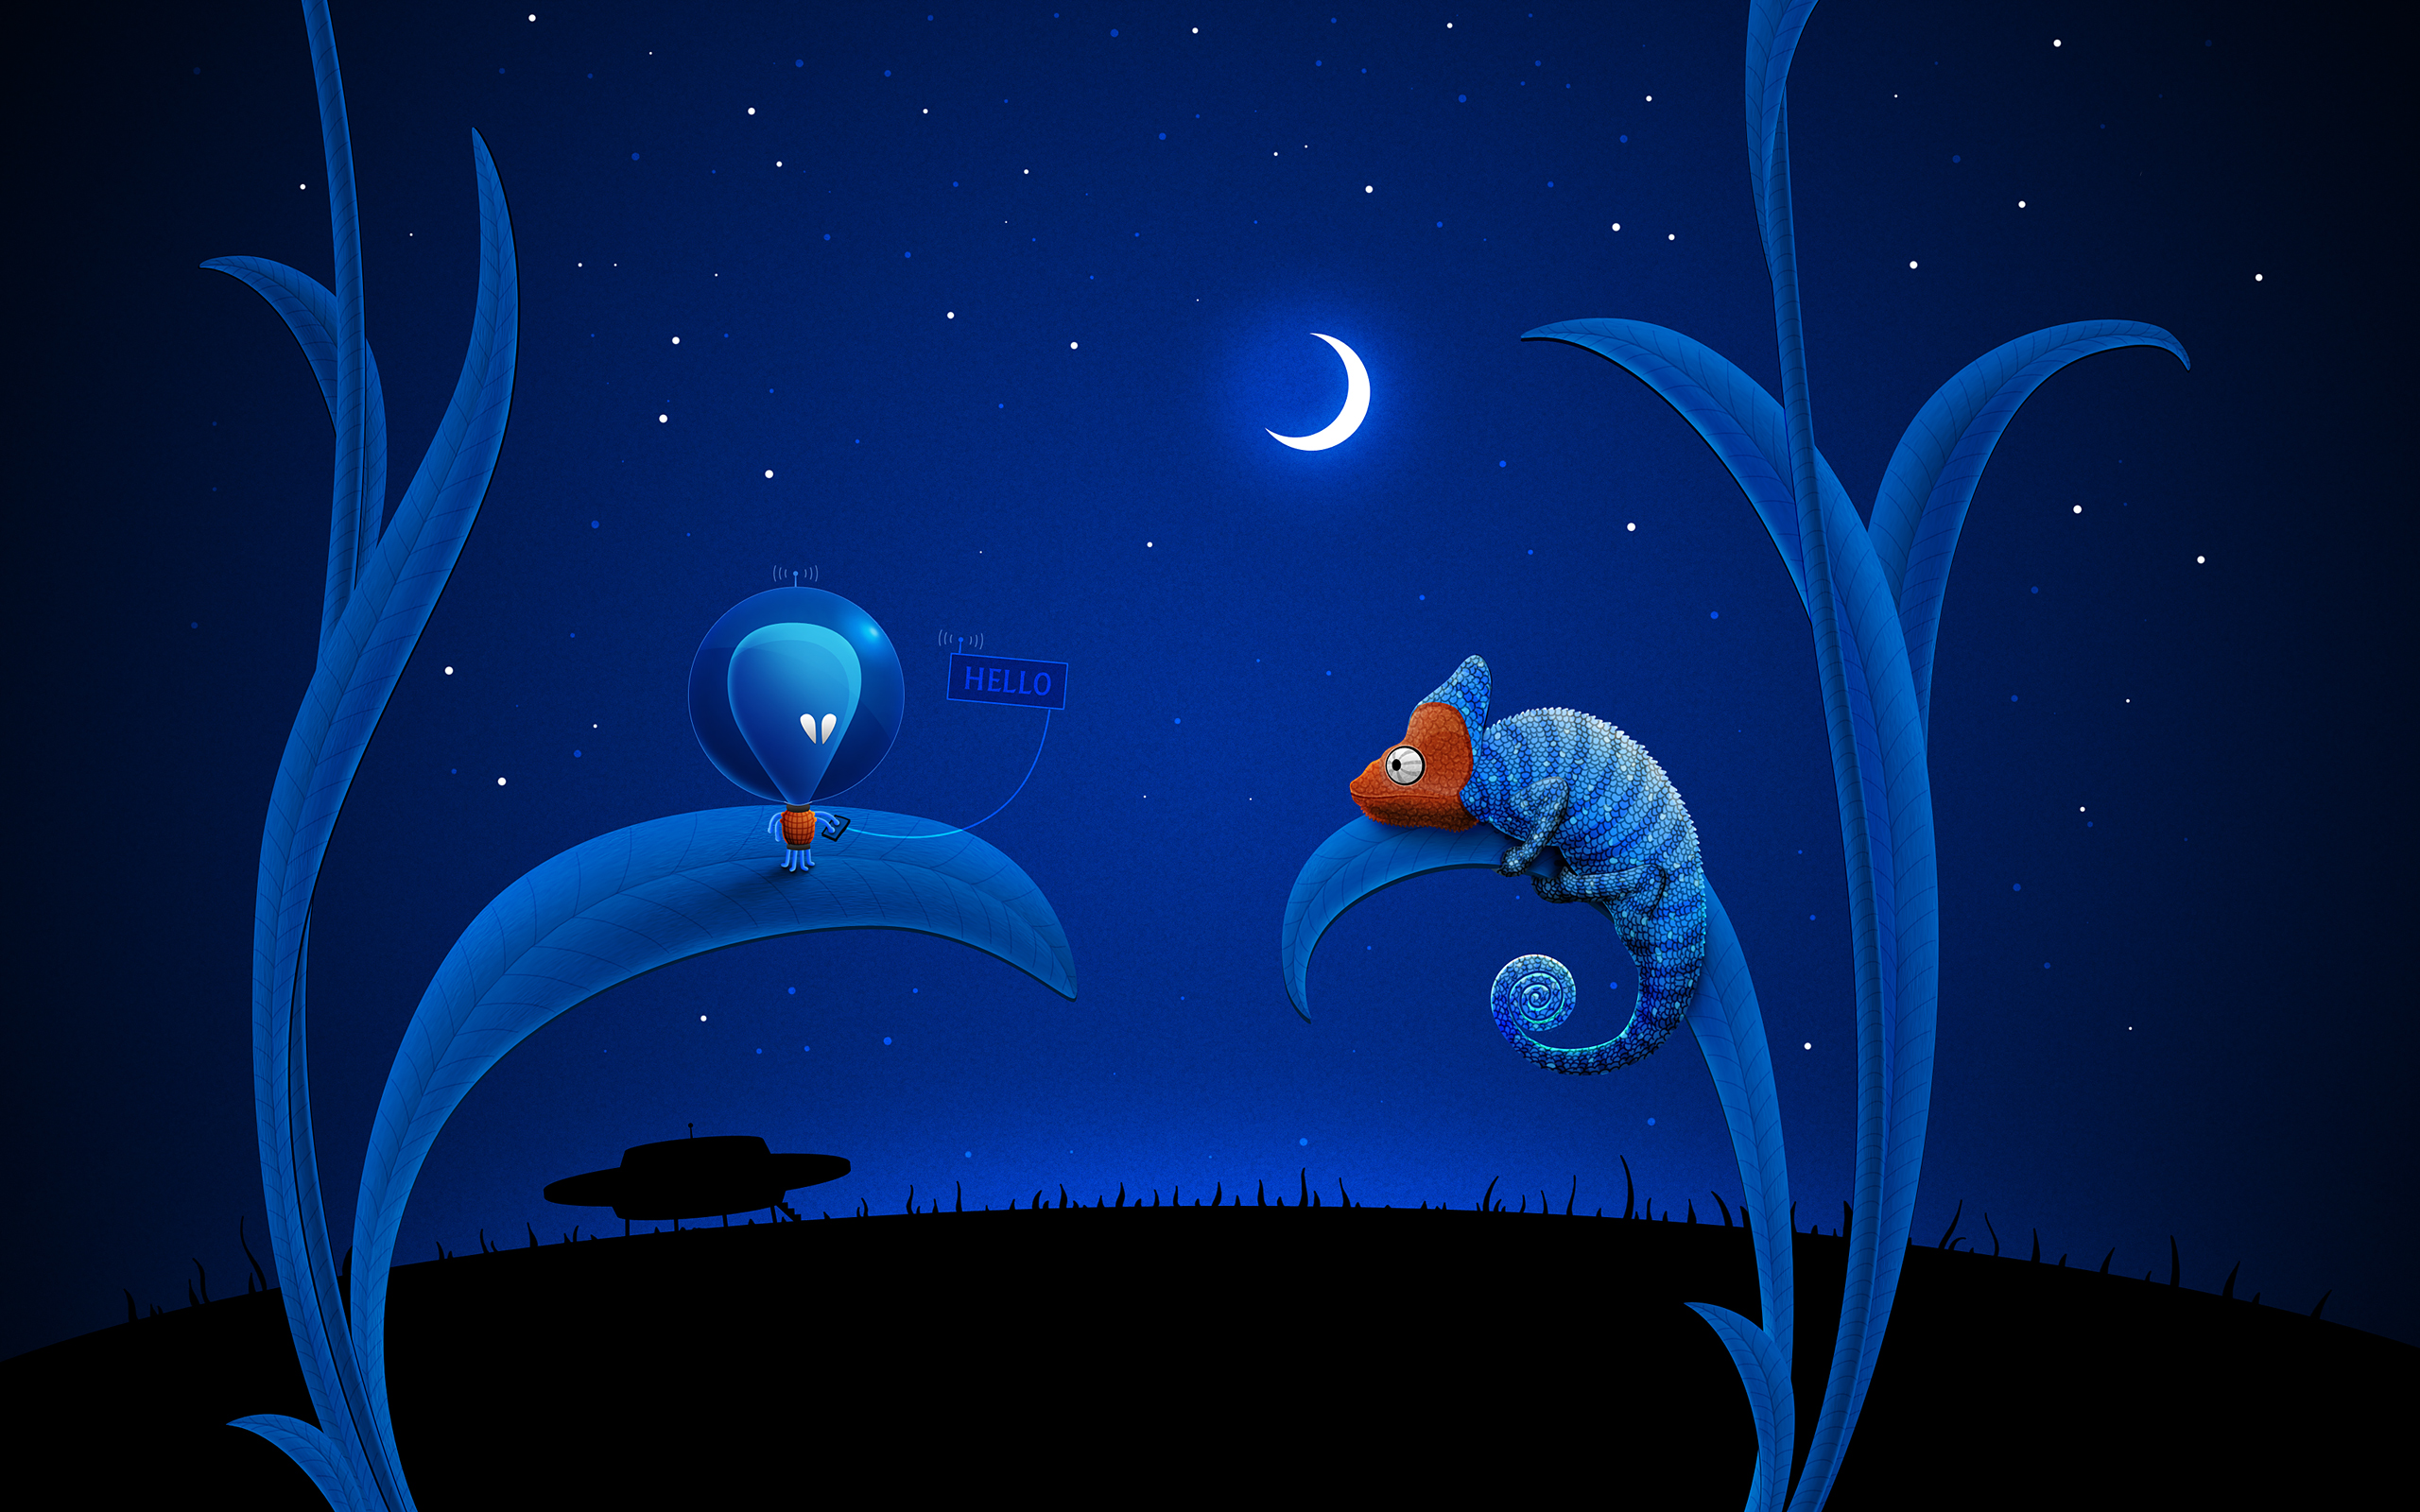 Alien Moon and Chameleon